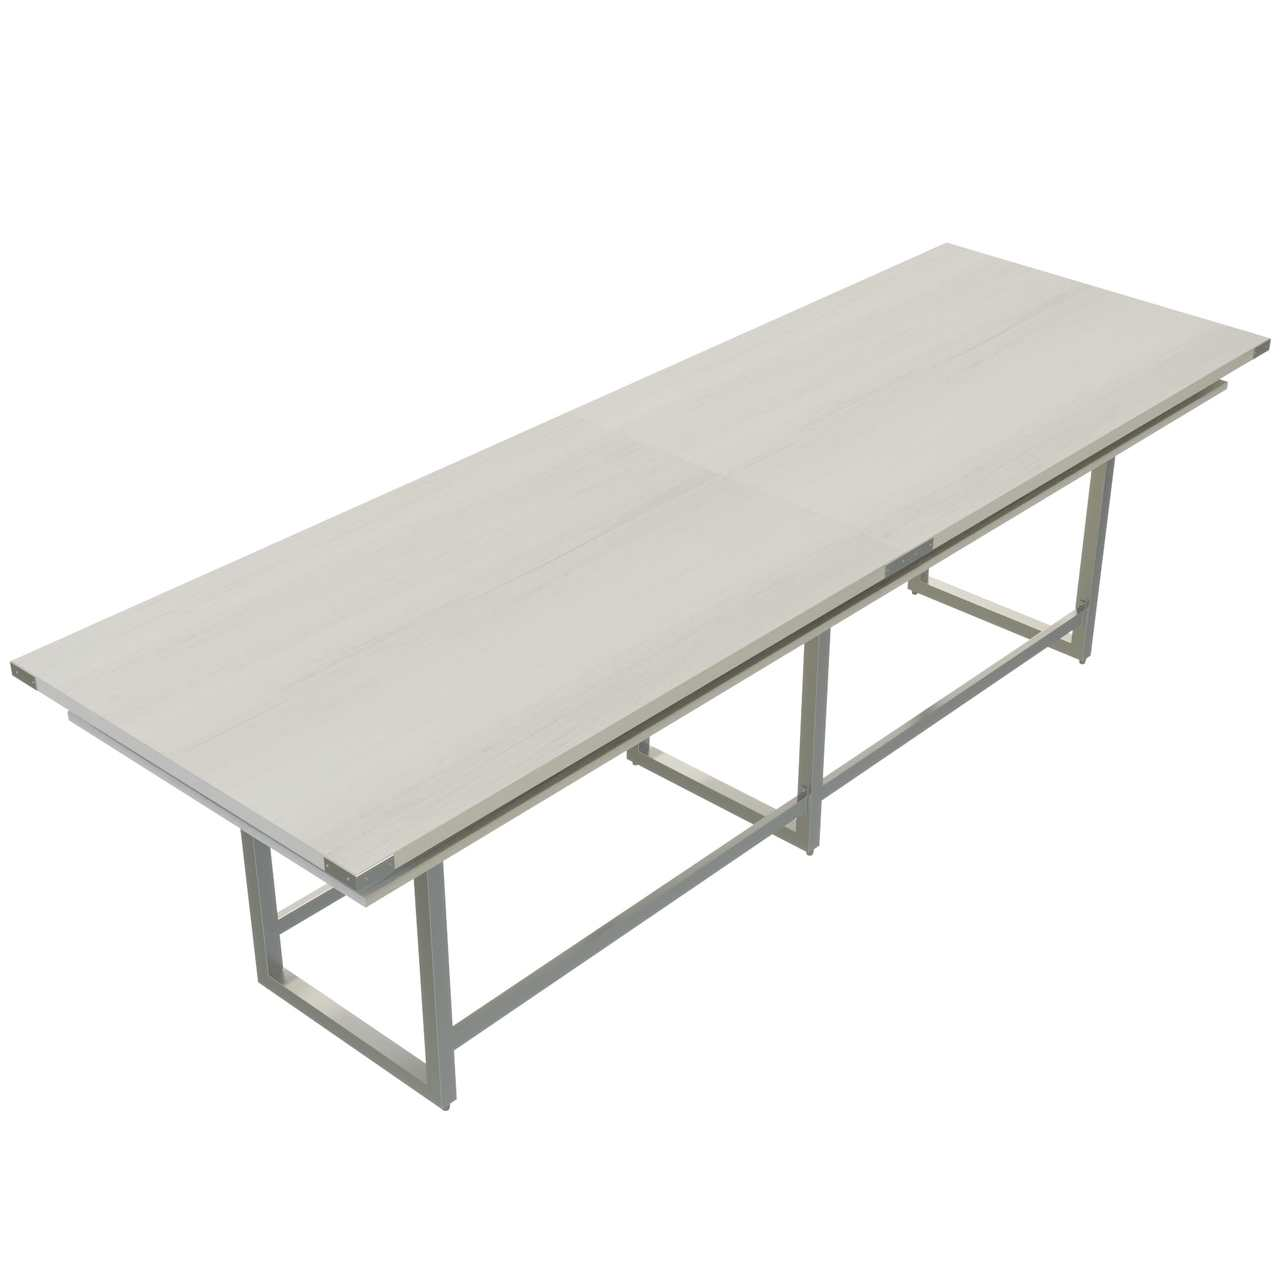 mirella standing height conference table with white ash laminate finish